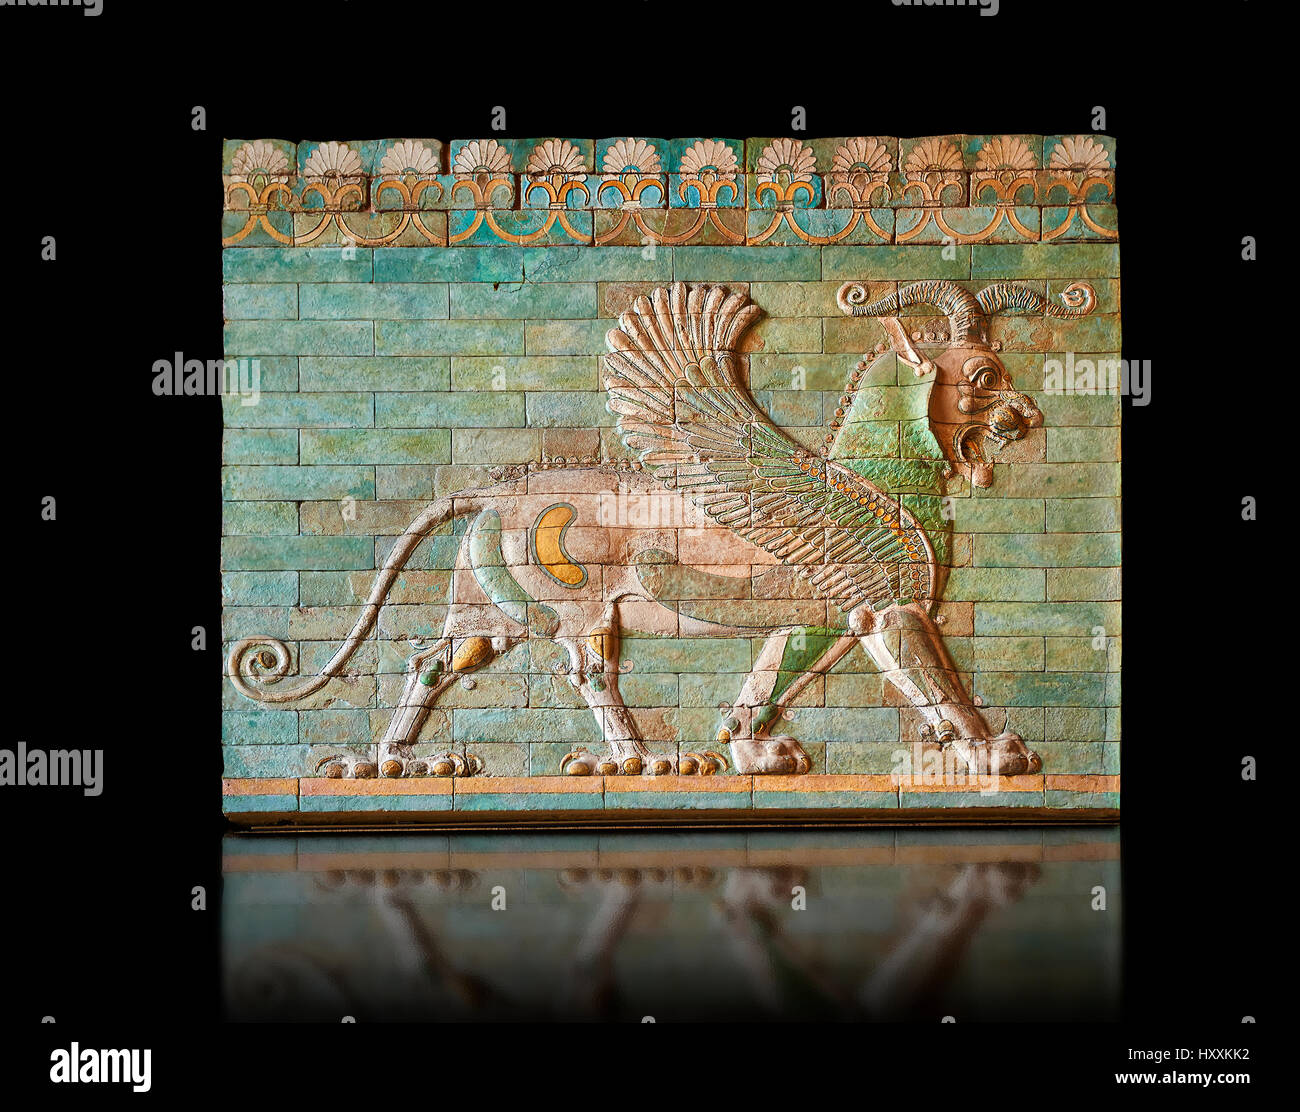 Glazed terracotta tiled panels depicting mythical Griffins. Reign of Darius 1st,  First Persian or Achaemenid Empire. - Stock Image